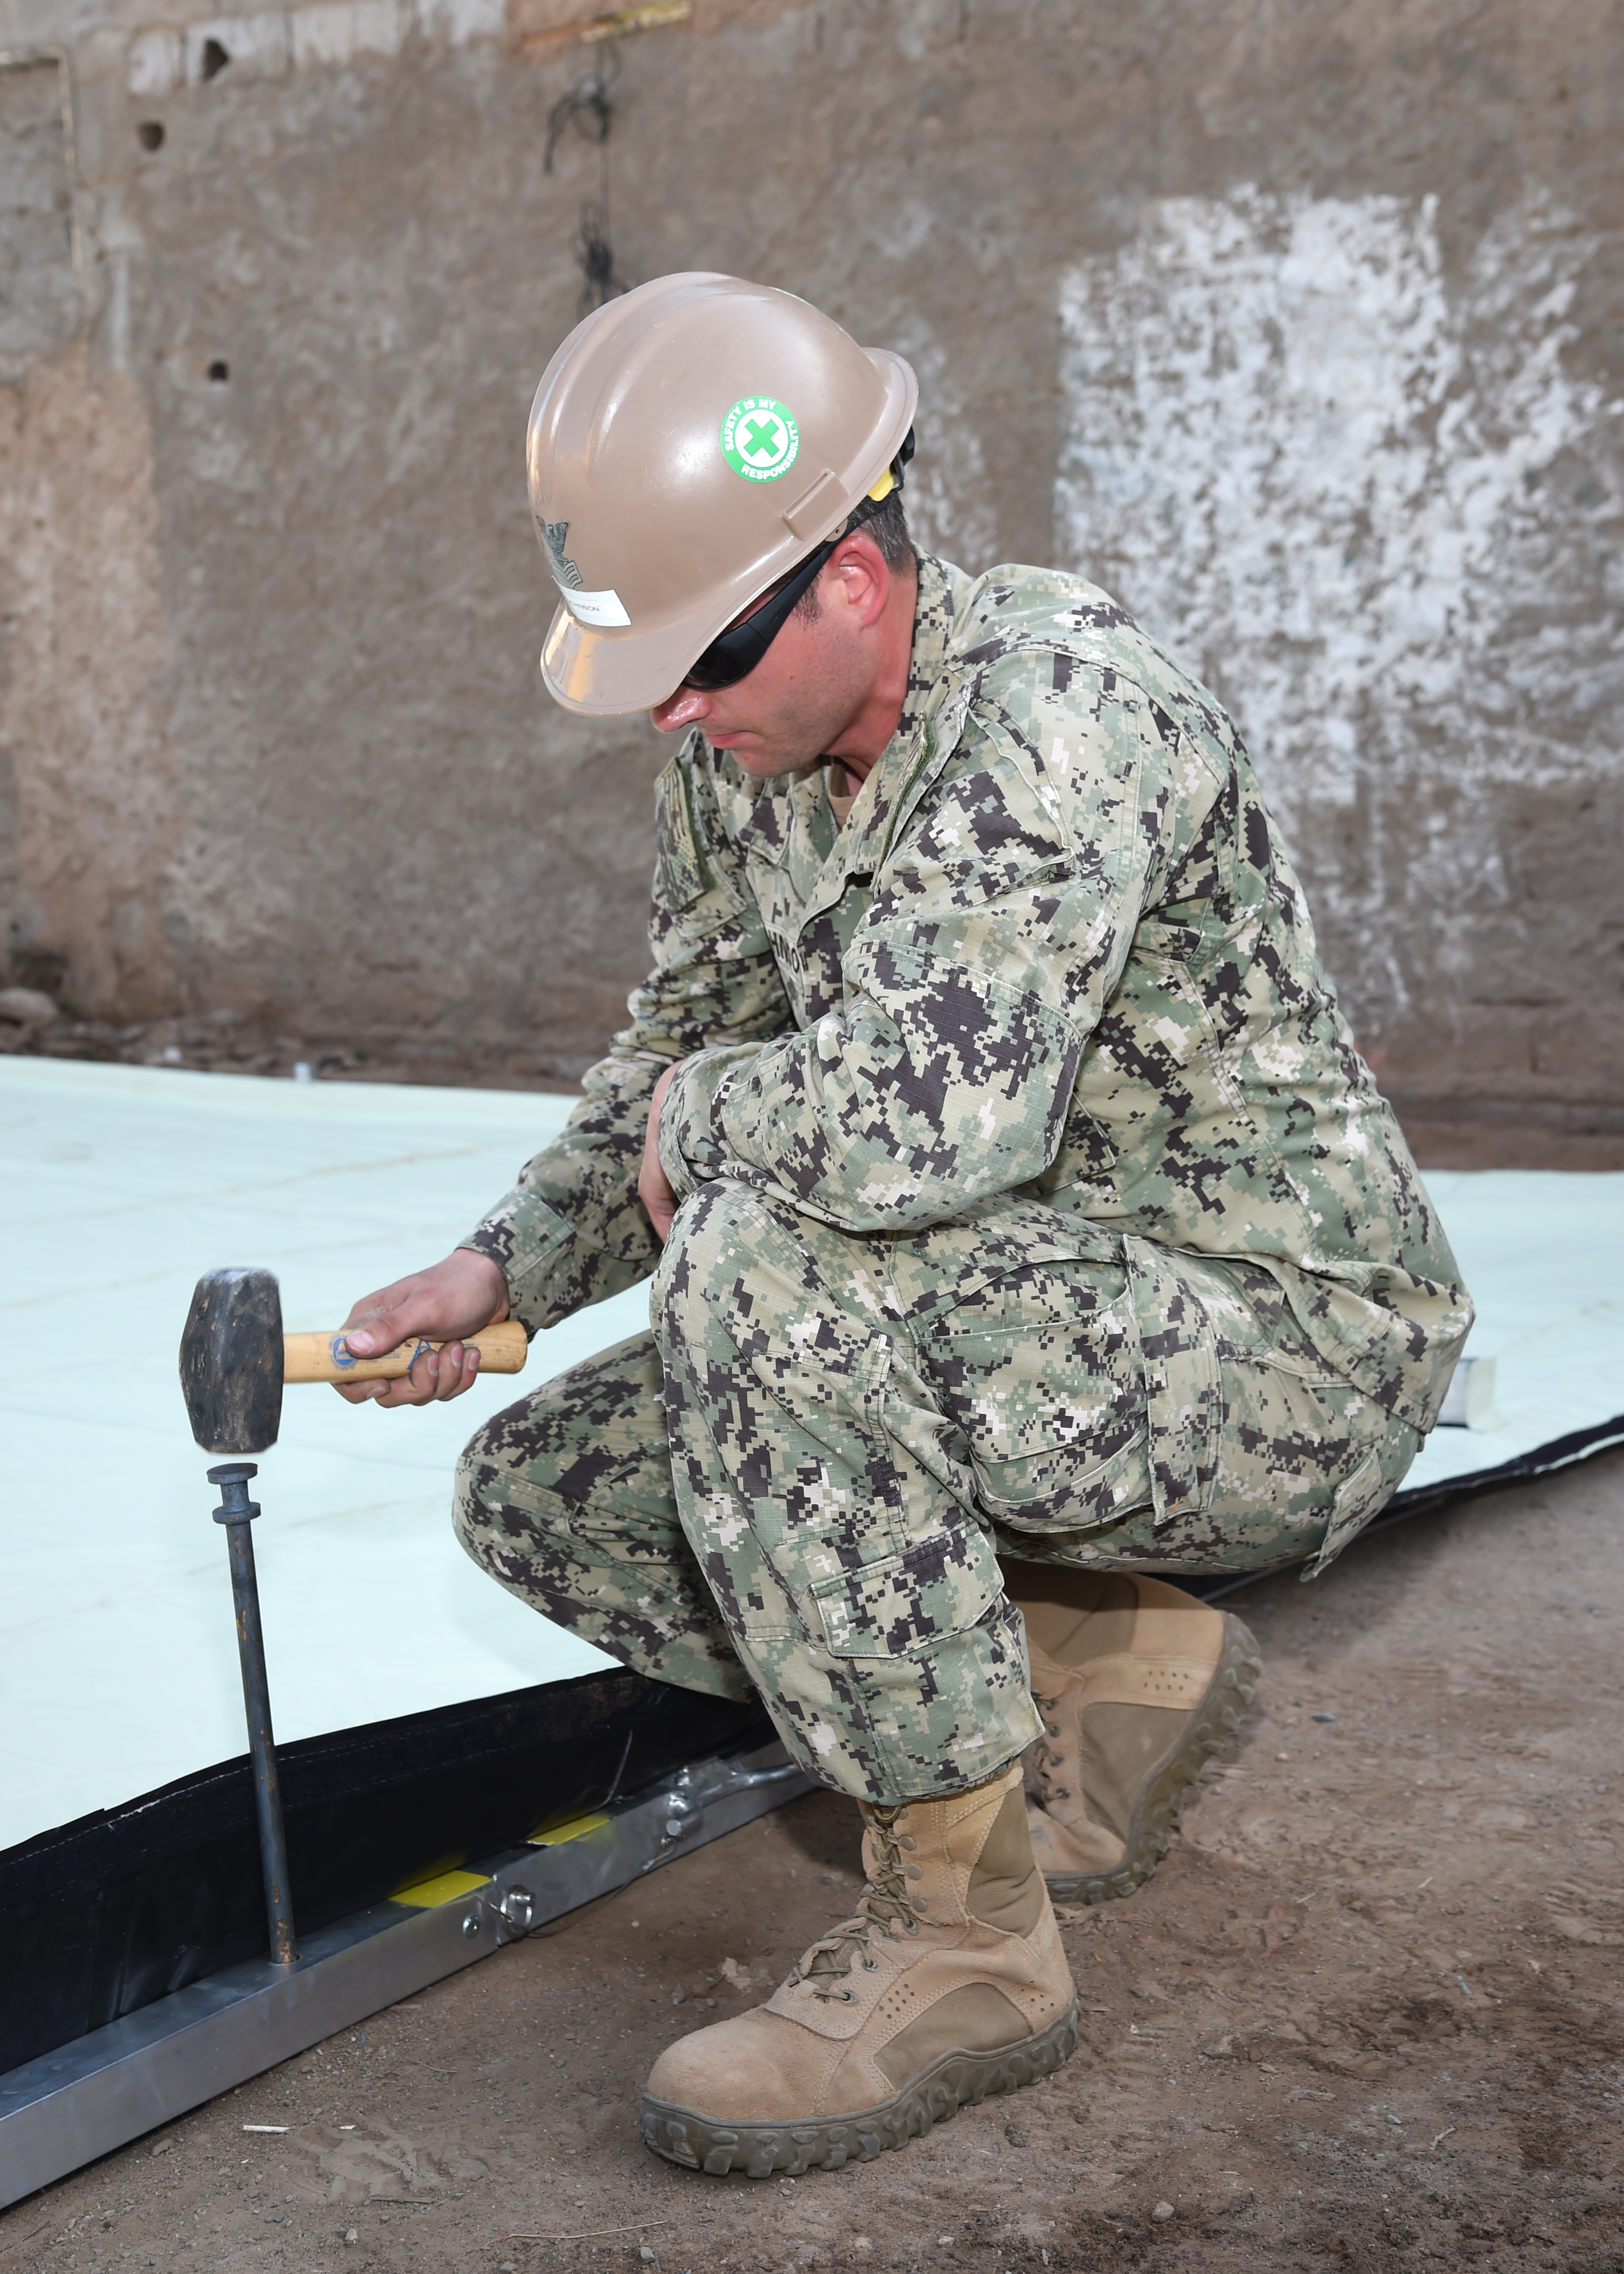 U.S. Navy Utilitiesman 1st Class Cole Johnson, a Seabee with Naval Mobile Construction Battalion 1, assists with the construction of a modular shelter system in Djibouti City, Feb. 27, 2017. Seabees assigned to Combined Joint Task Force-Horn of Africa helped Djiboutian soldiers construct the donated shelters for use as schools, clinics, and centers for cottage industry to promote the health, education and economic stability of the Djiboutian people. (U.S. Air National Guard photo by Master Sgt. Paul Gorman)